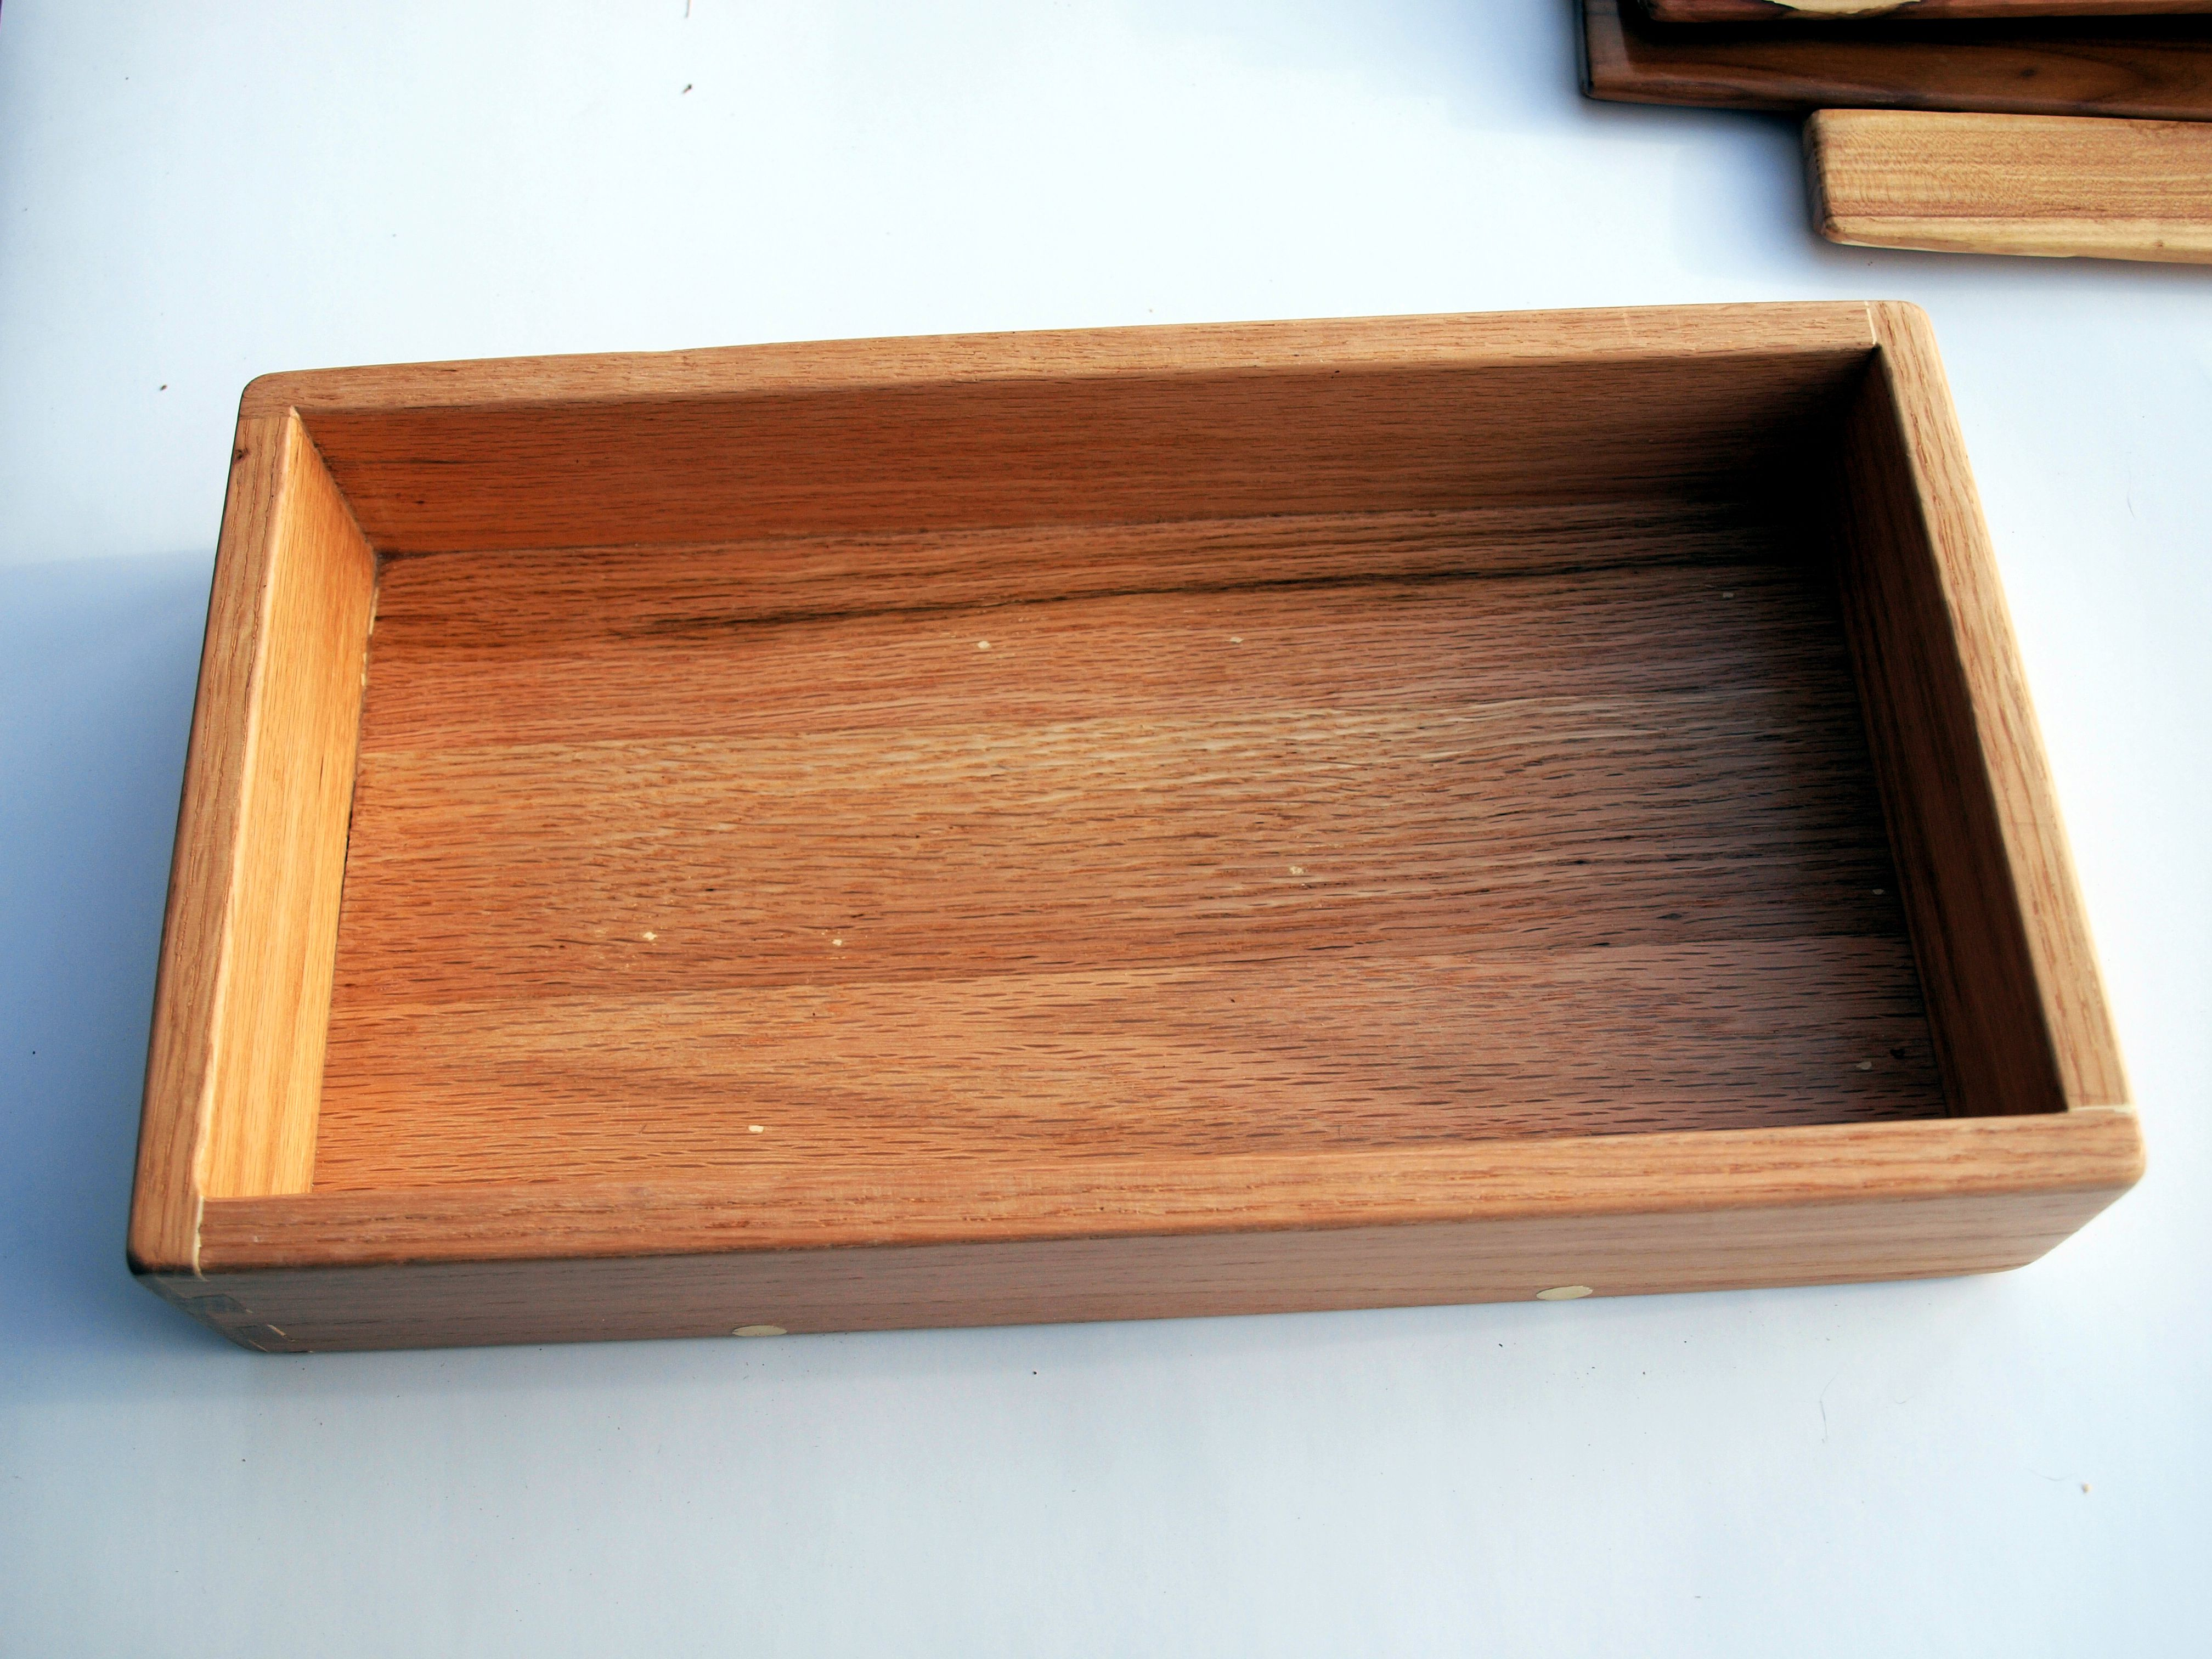 Picture of A Box to Go.